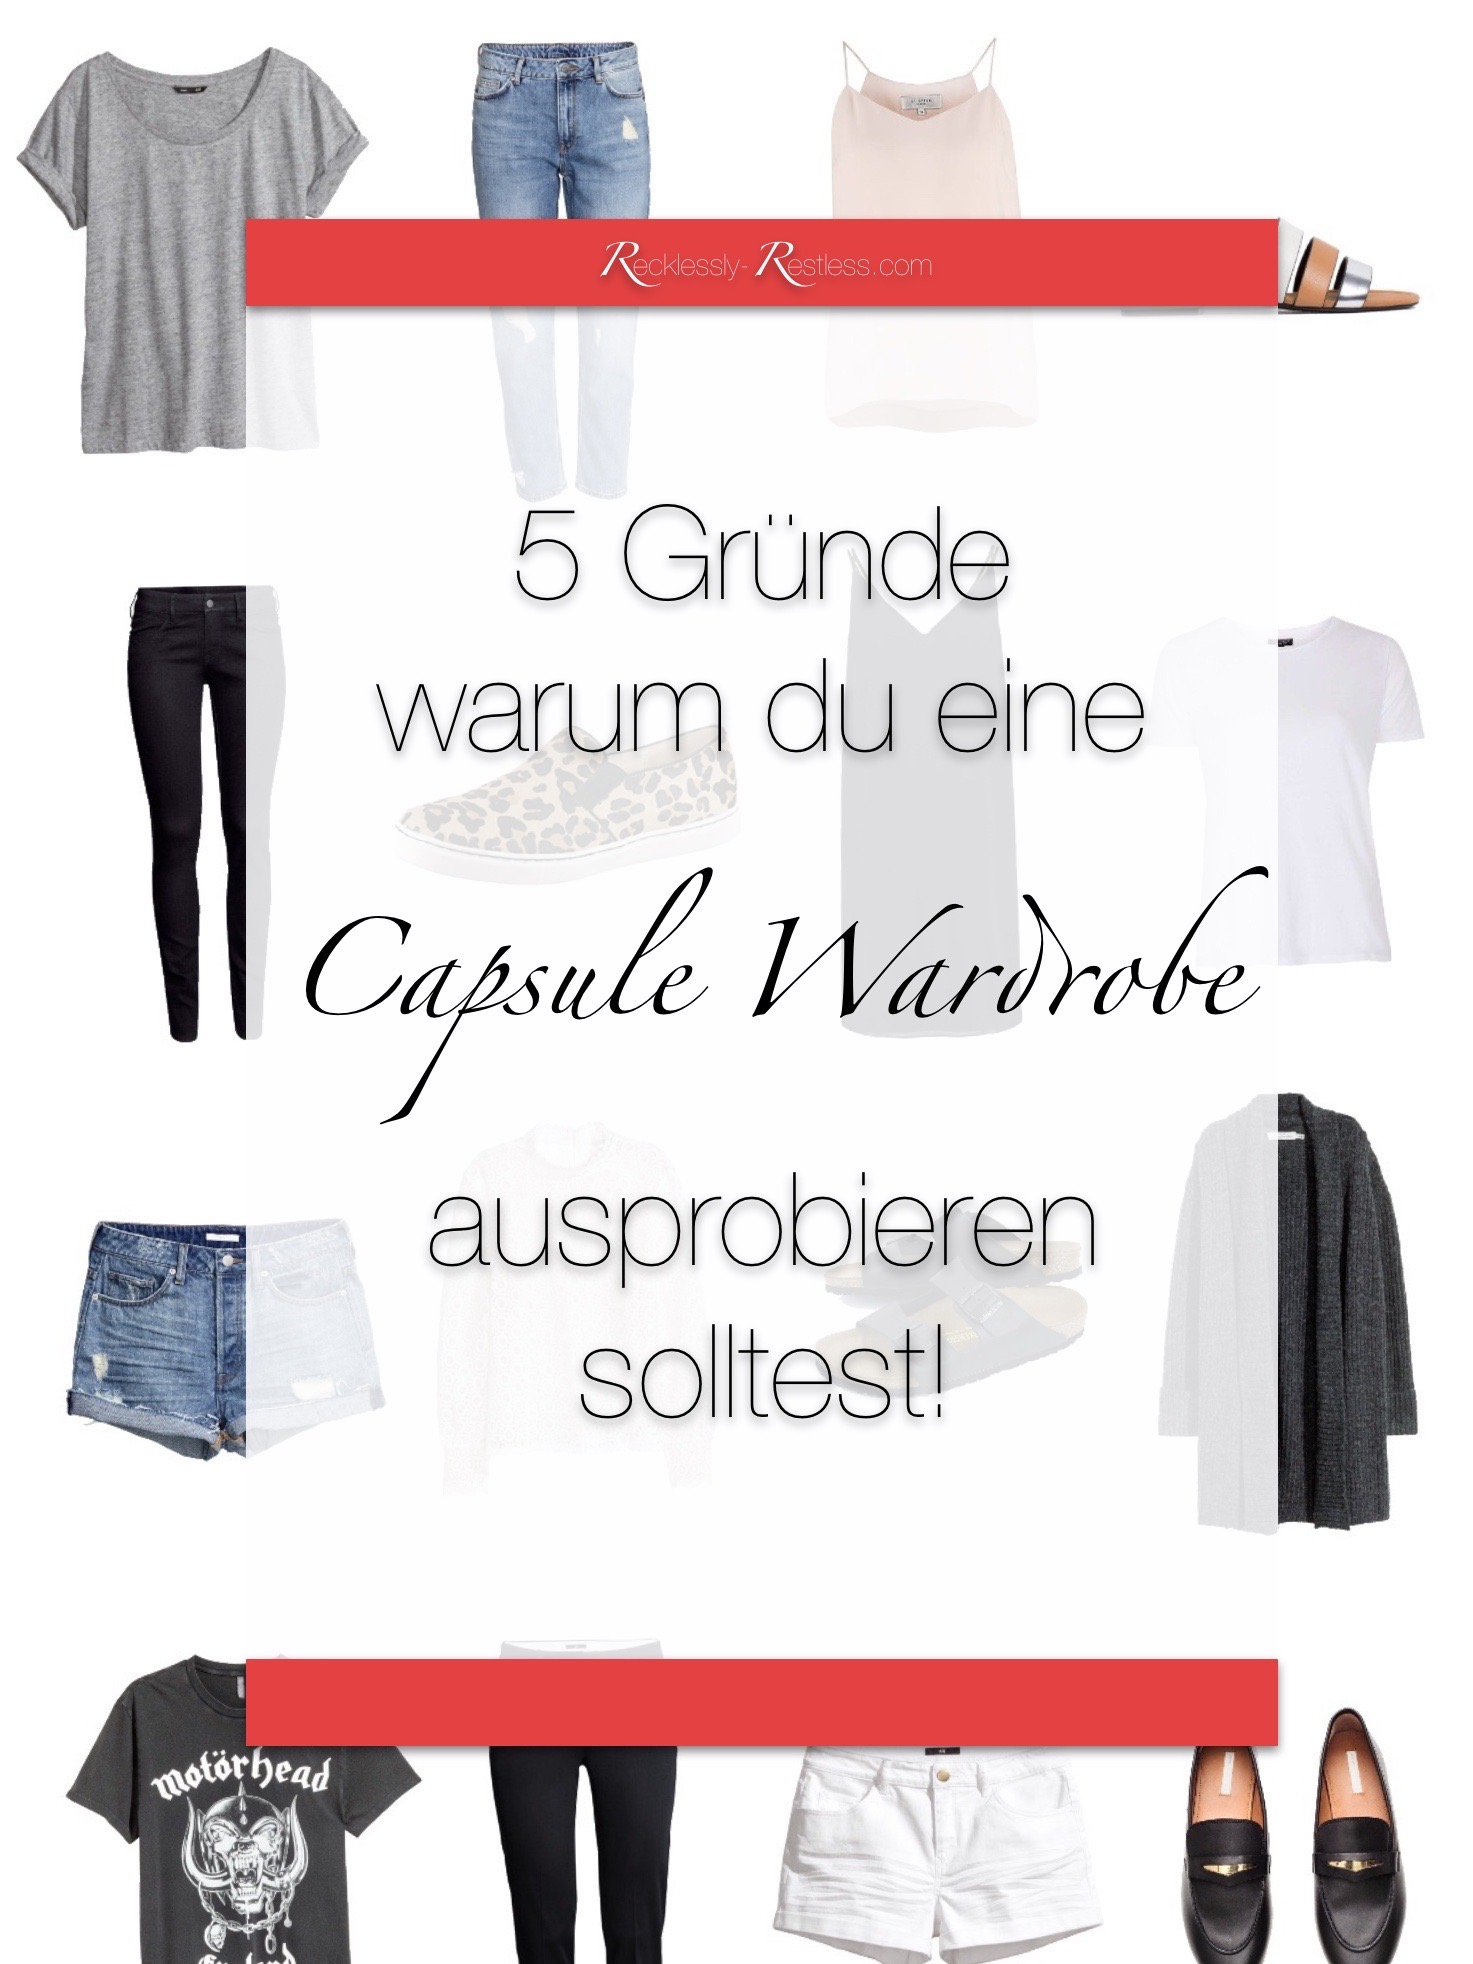 recklessly ein capsule wardrobe blog shoppe weniger sieh besser aus und reise. Black Bedroom Furniture Sets. Home Design Ideas